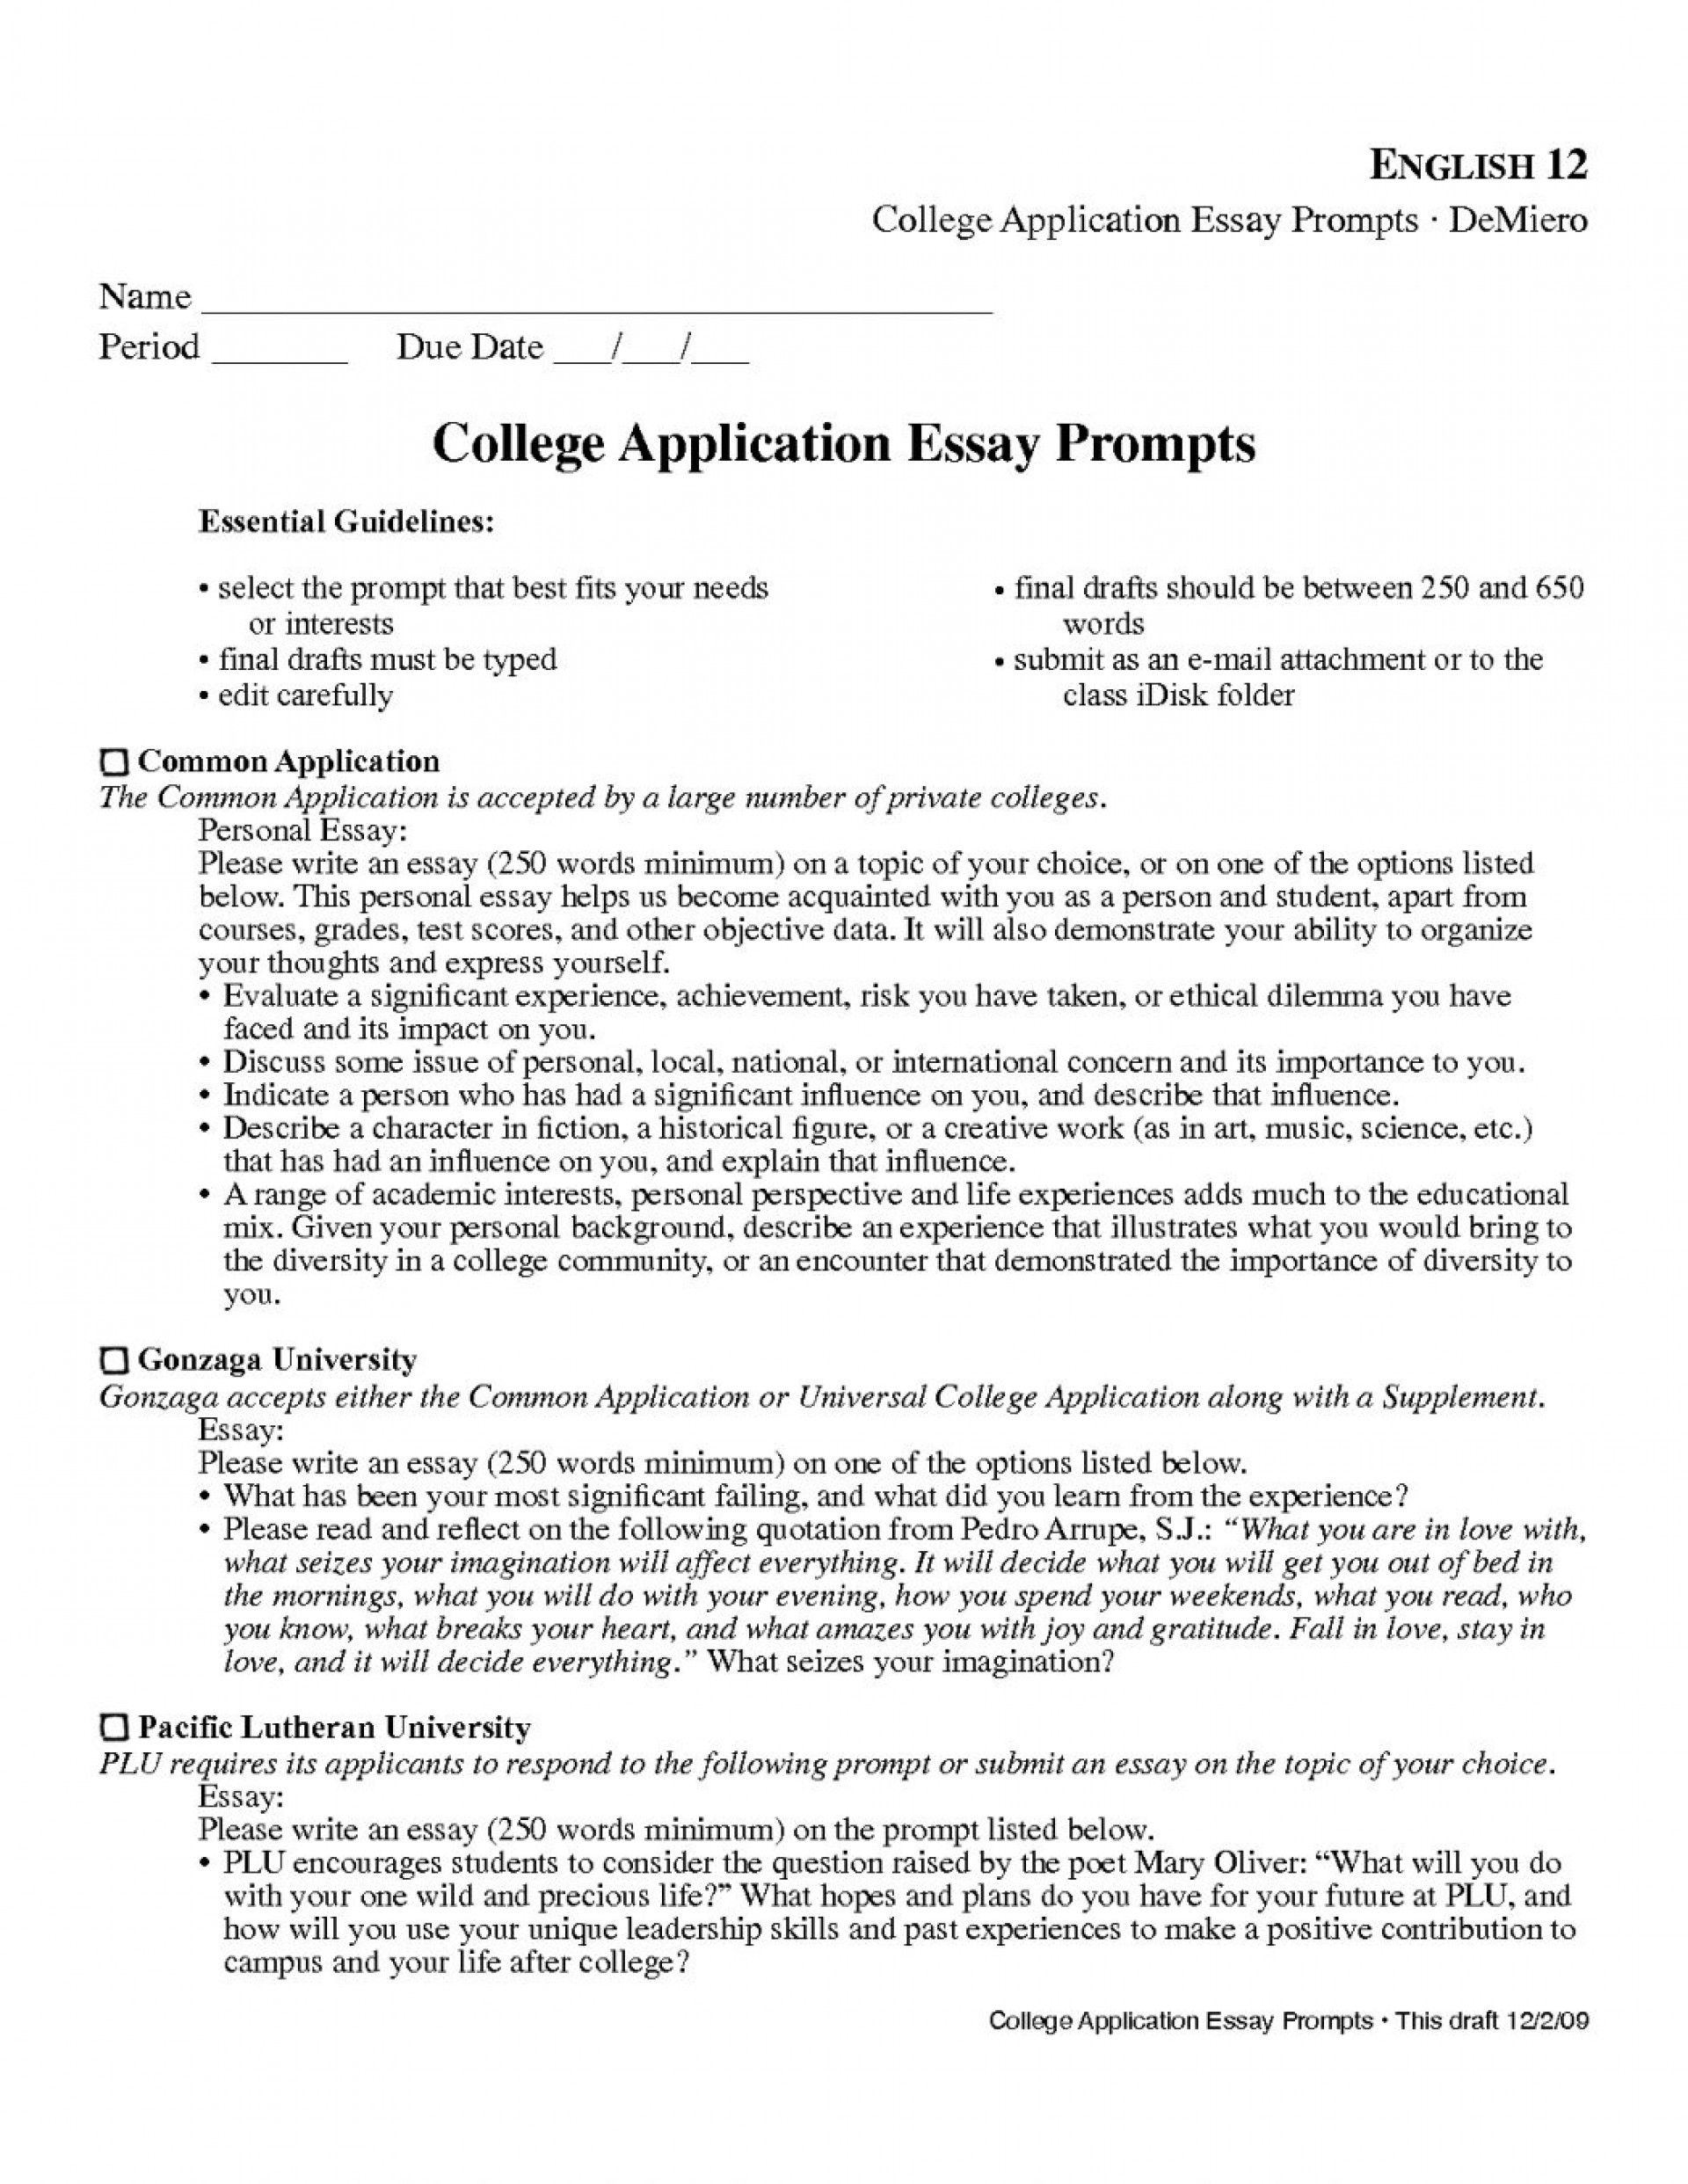 Common college application essay questions